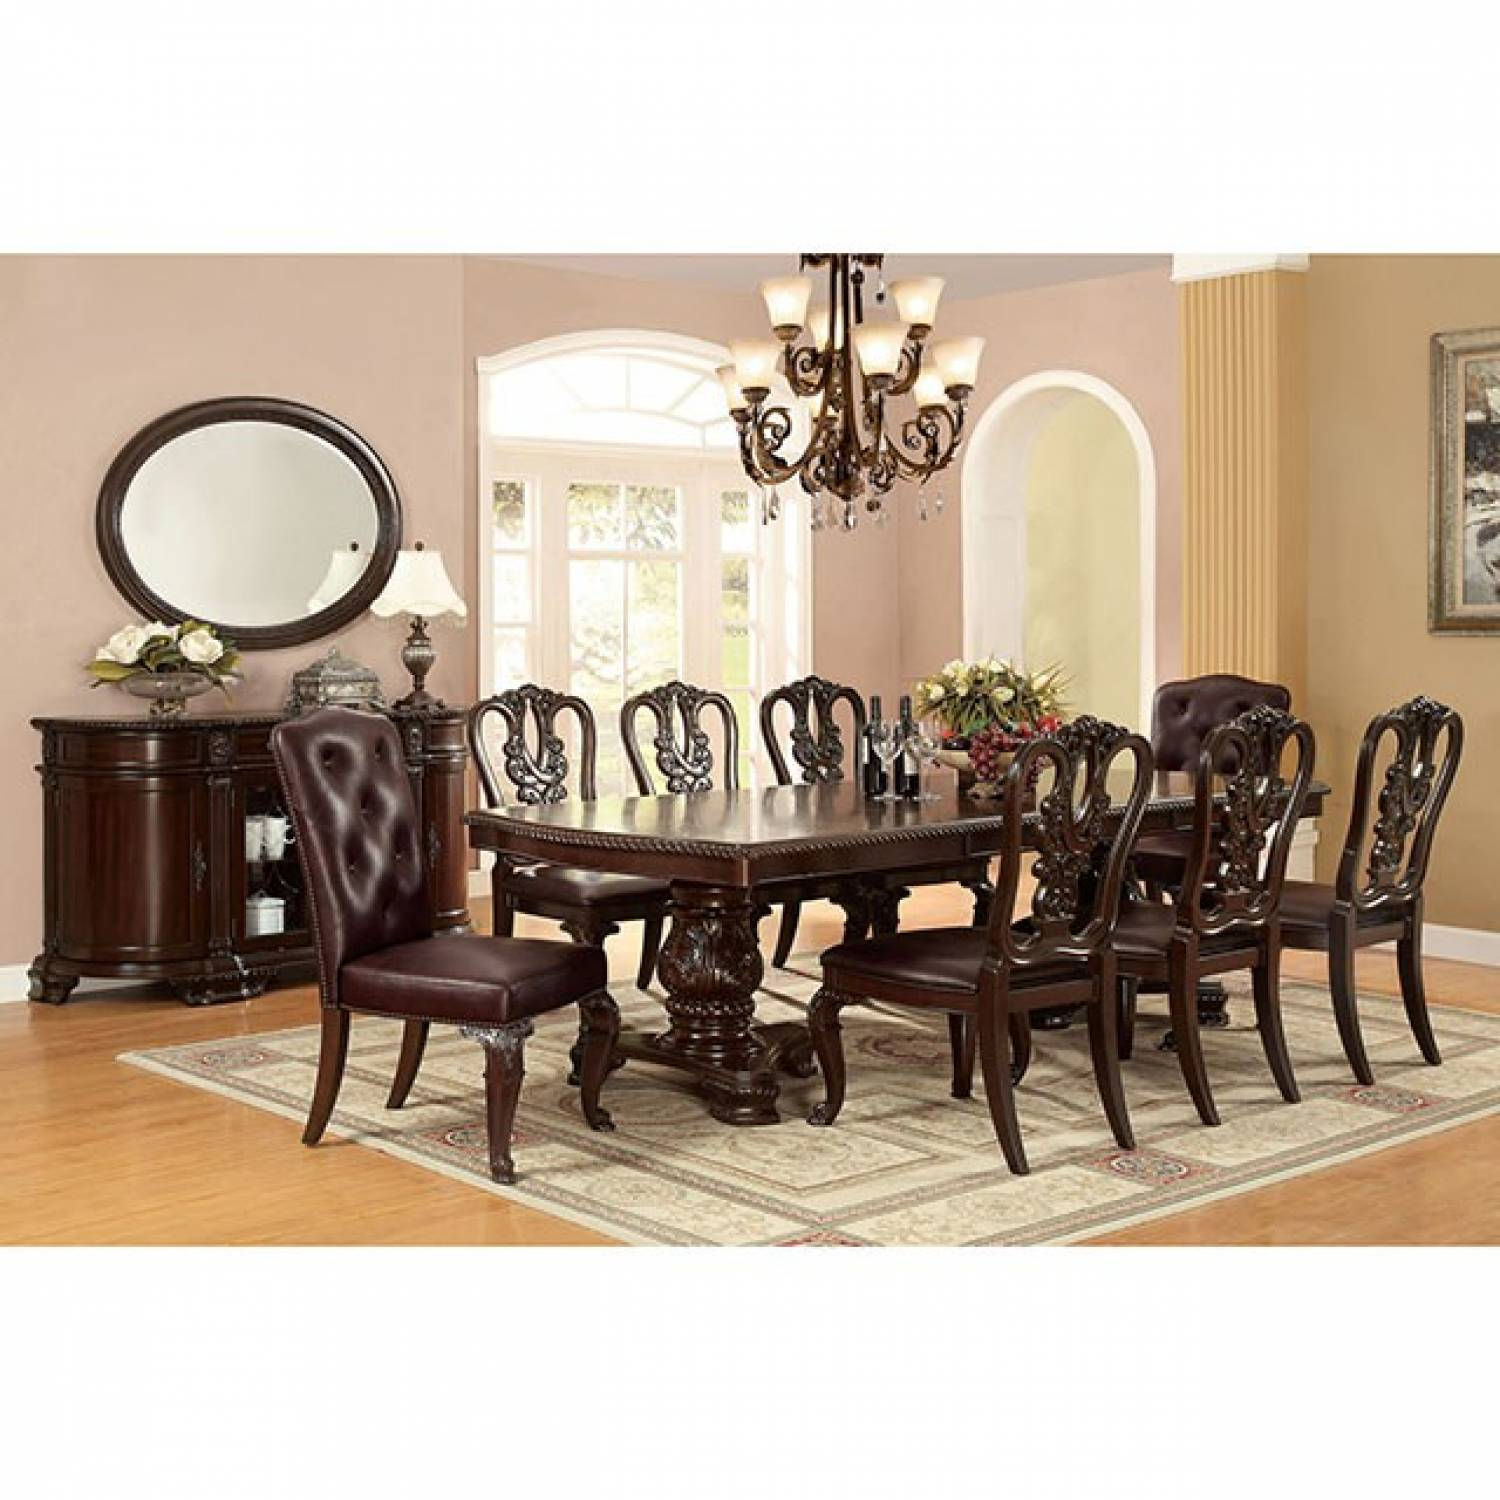 06942f90a08 Bellagio Brown Cherry 9 Pc Set (Table + 2 Fabric Arm Chairs + 6 Side ...